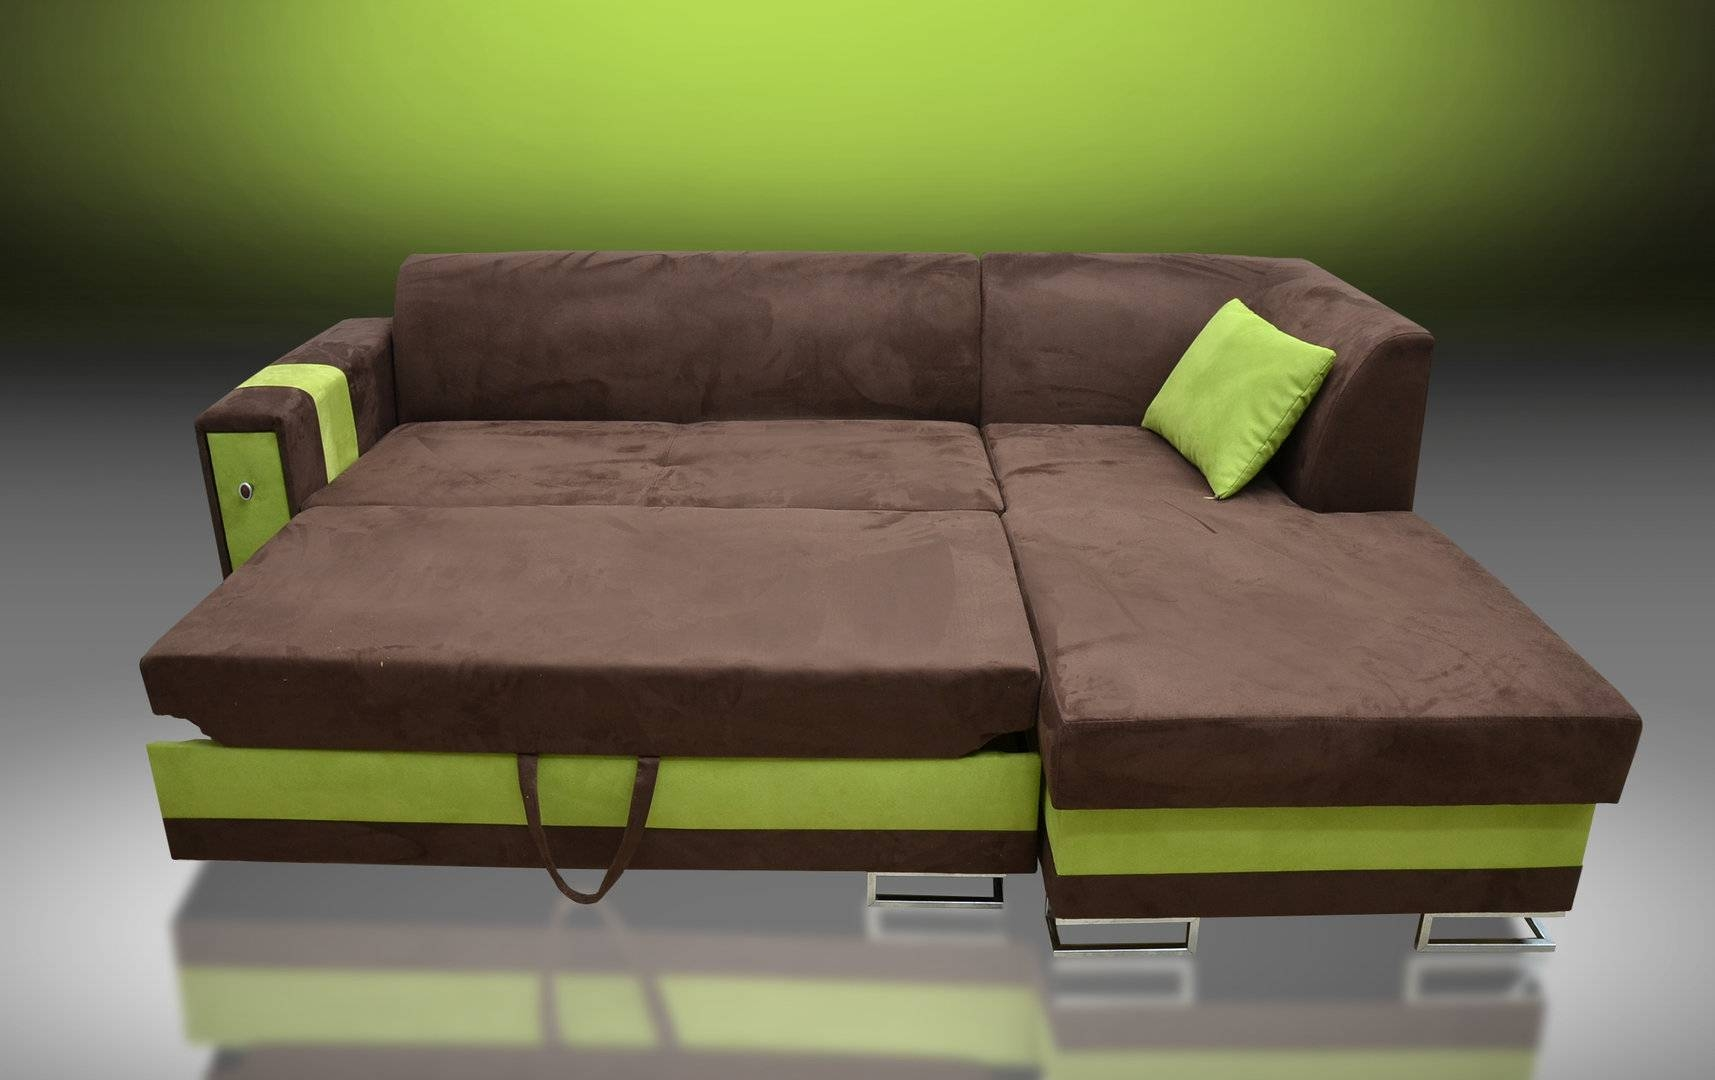 Sofa Bed Flame, Faux Suede Fabric Brown/kiwi Green throughout Faux Suede Sofa Bed (Image 23 of 25)